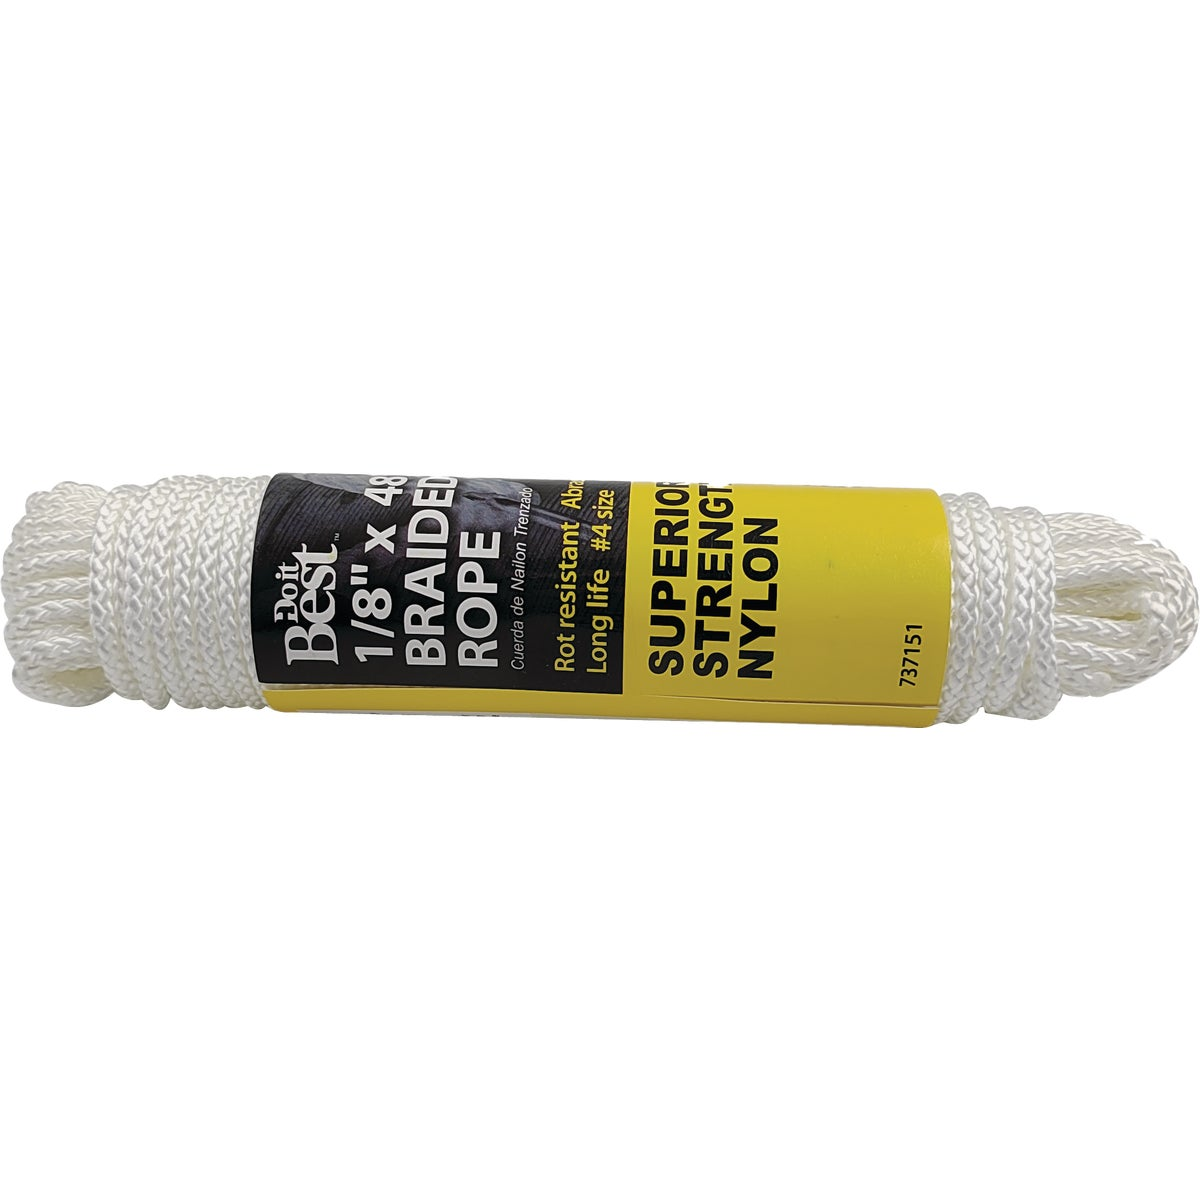 "1/8""X48' NYL BRAID ROPE"